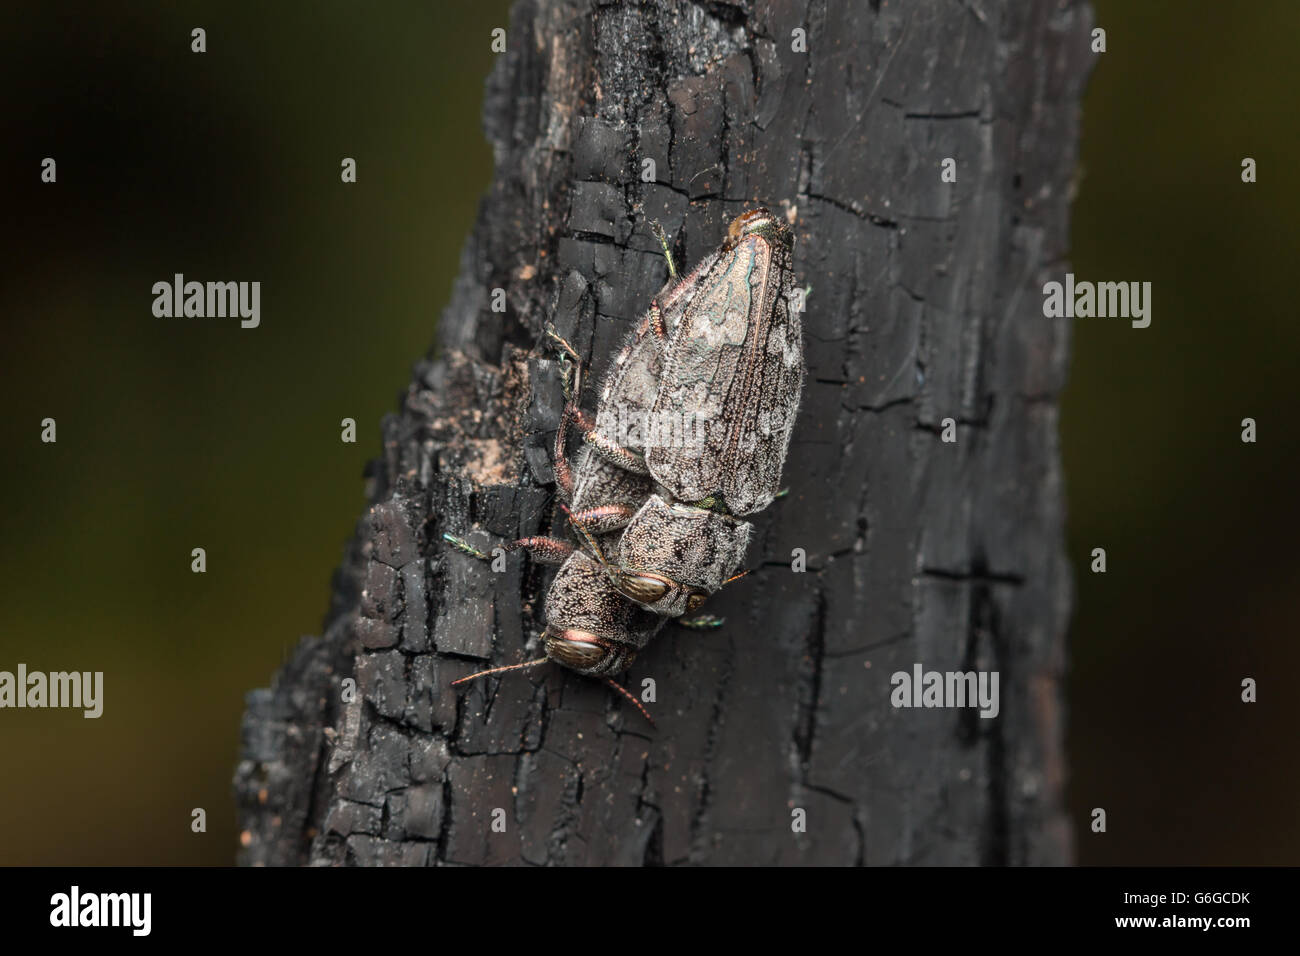 A pair of Metallic Wood-boring Beetles (Chrysobothris rugosiceps) mate on the charred remains of a burned tree. - Stock Image